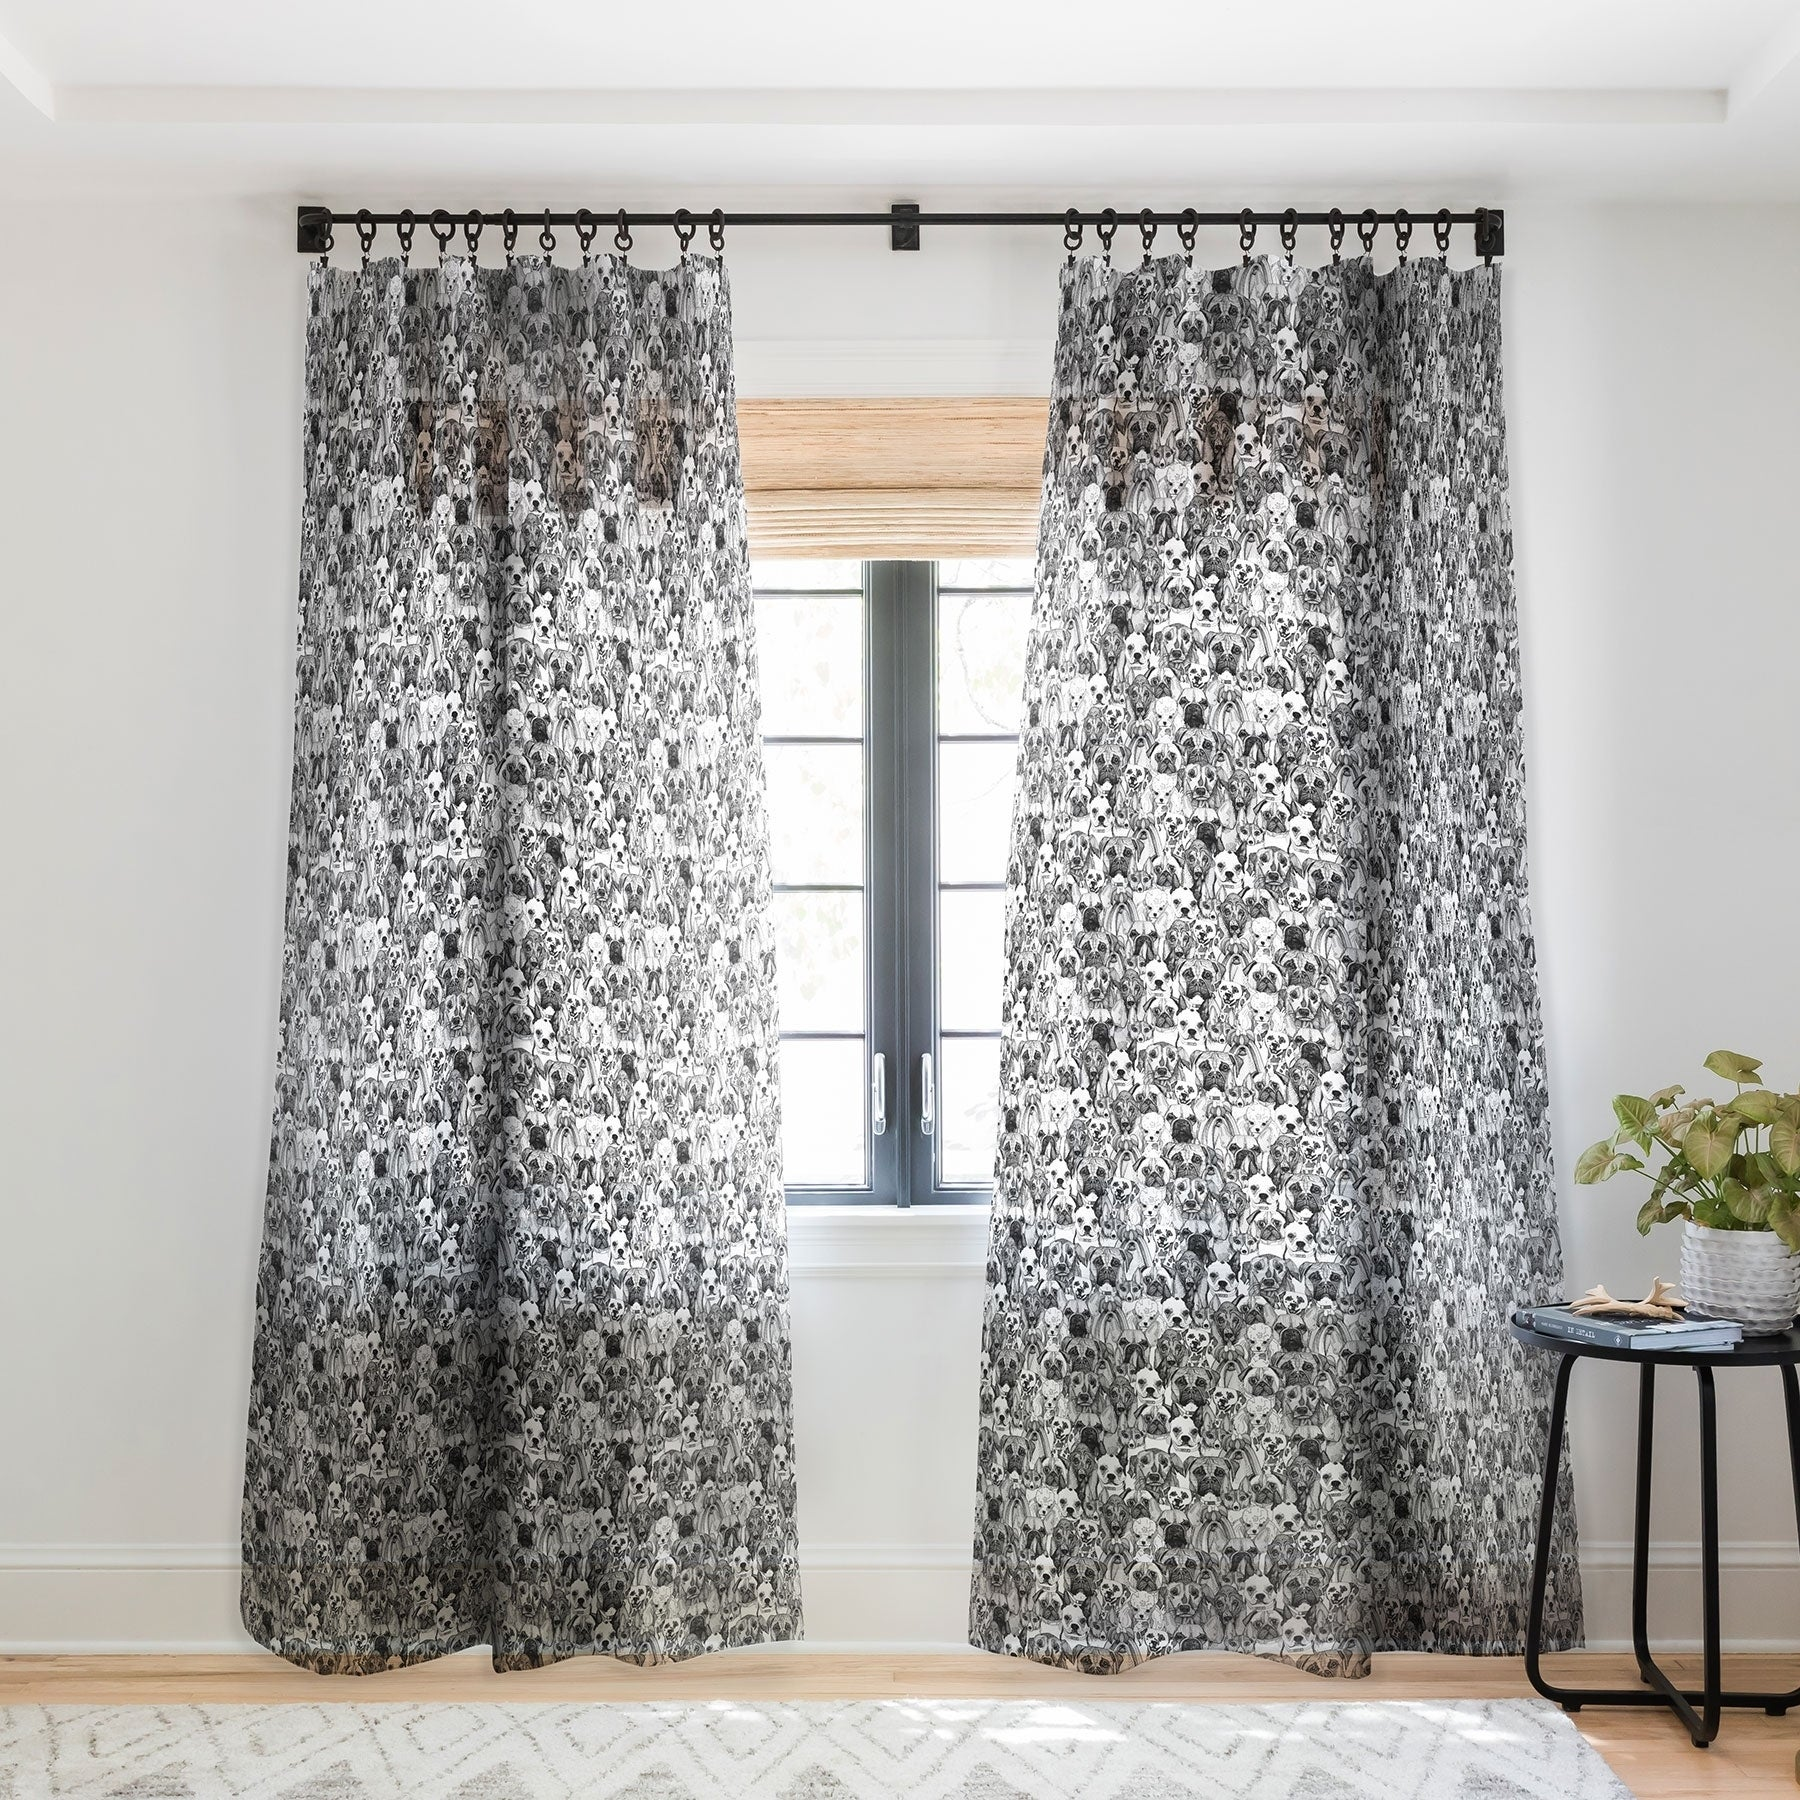 Just Dogs Single Panel Sheer Curtain